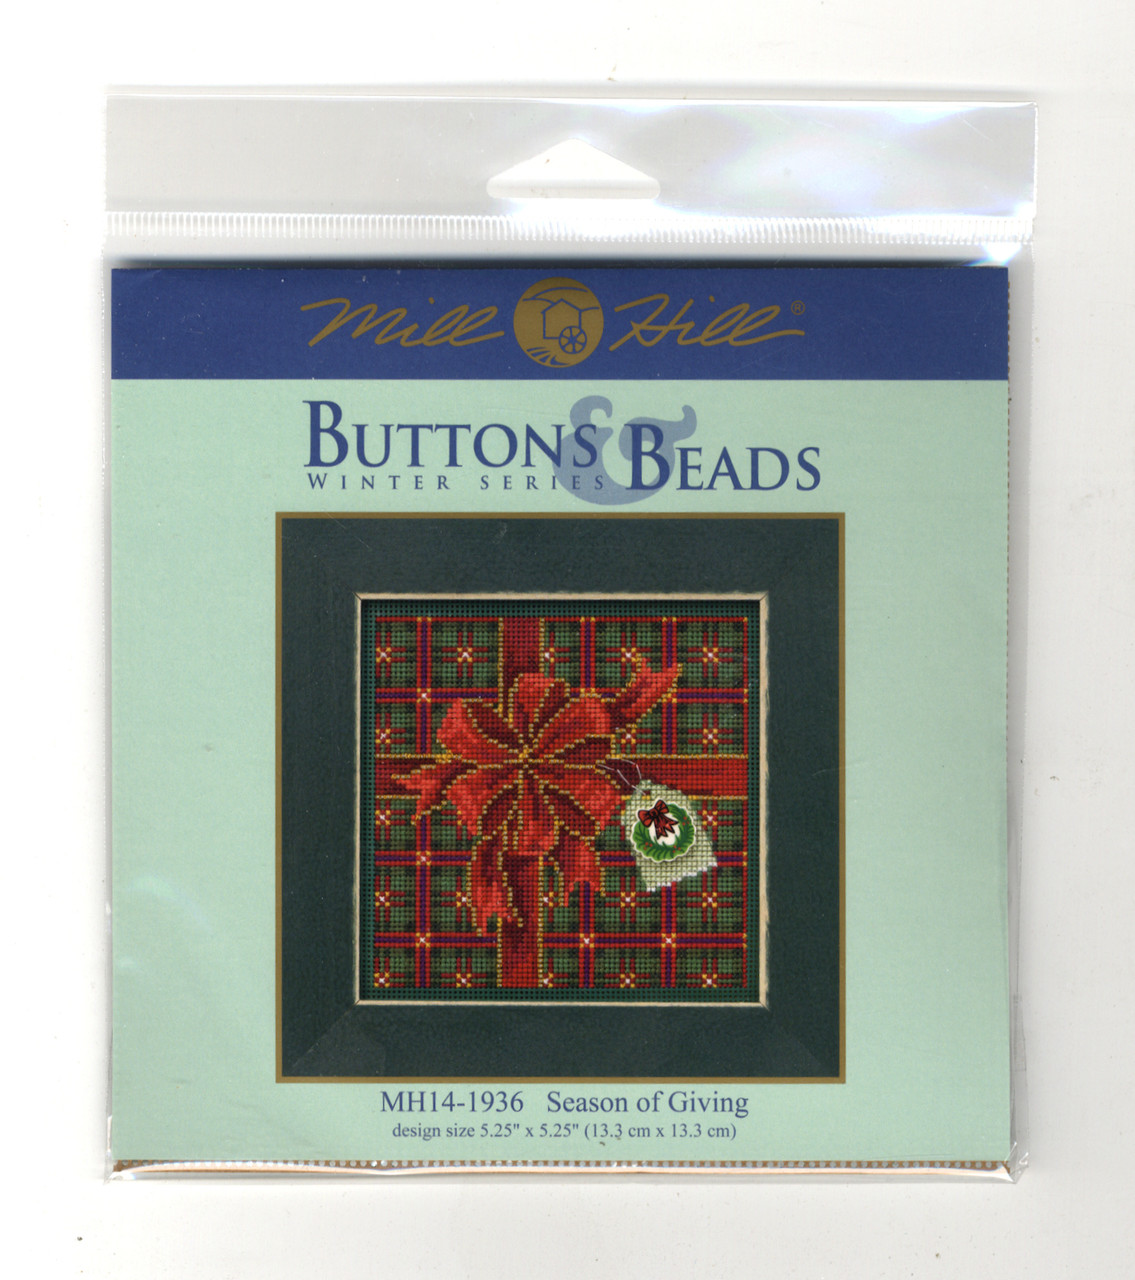 2019 Mill Hill Buttons & Beads Winter Series - Season of Giving